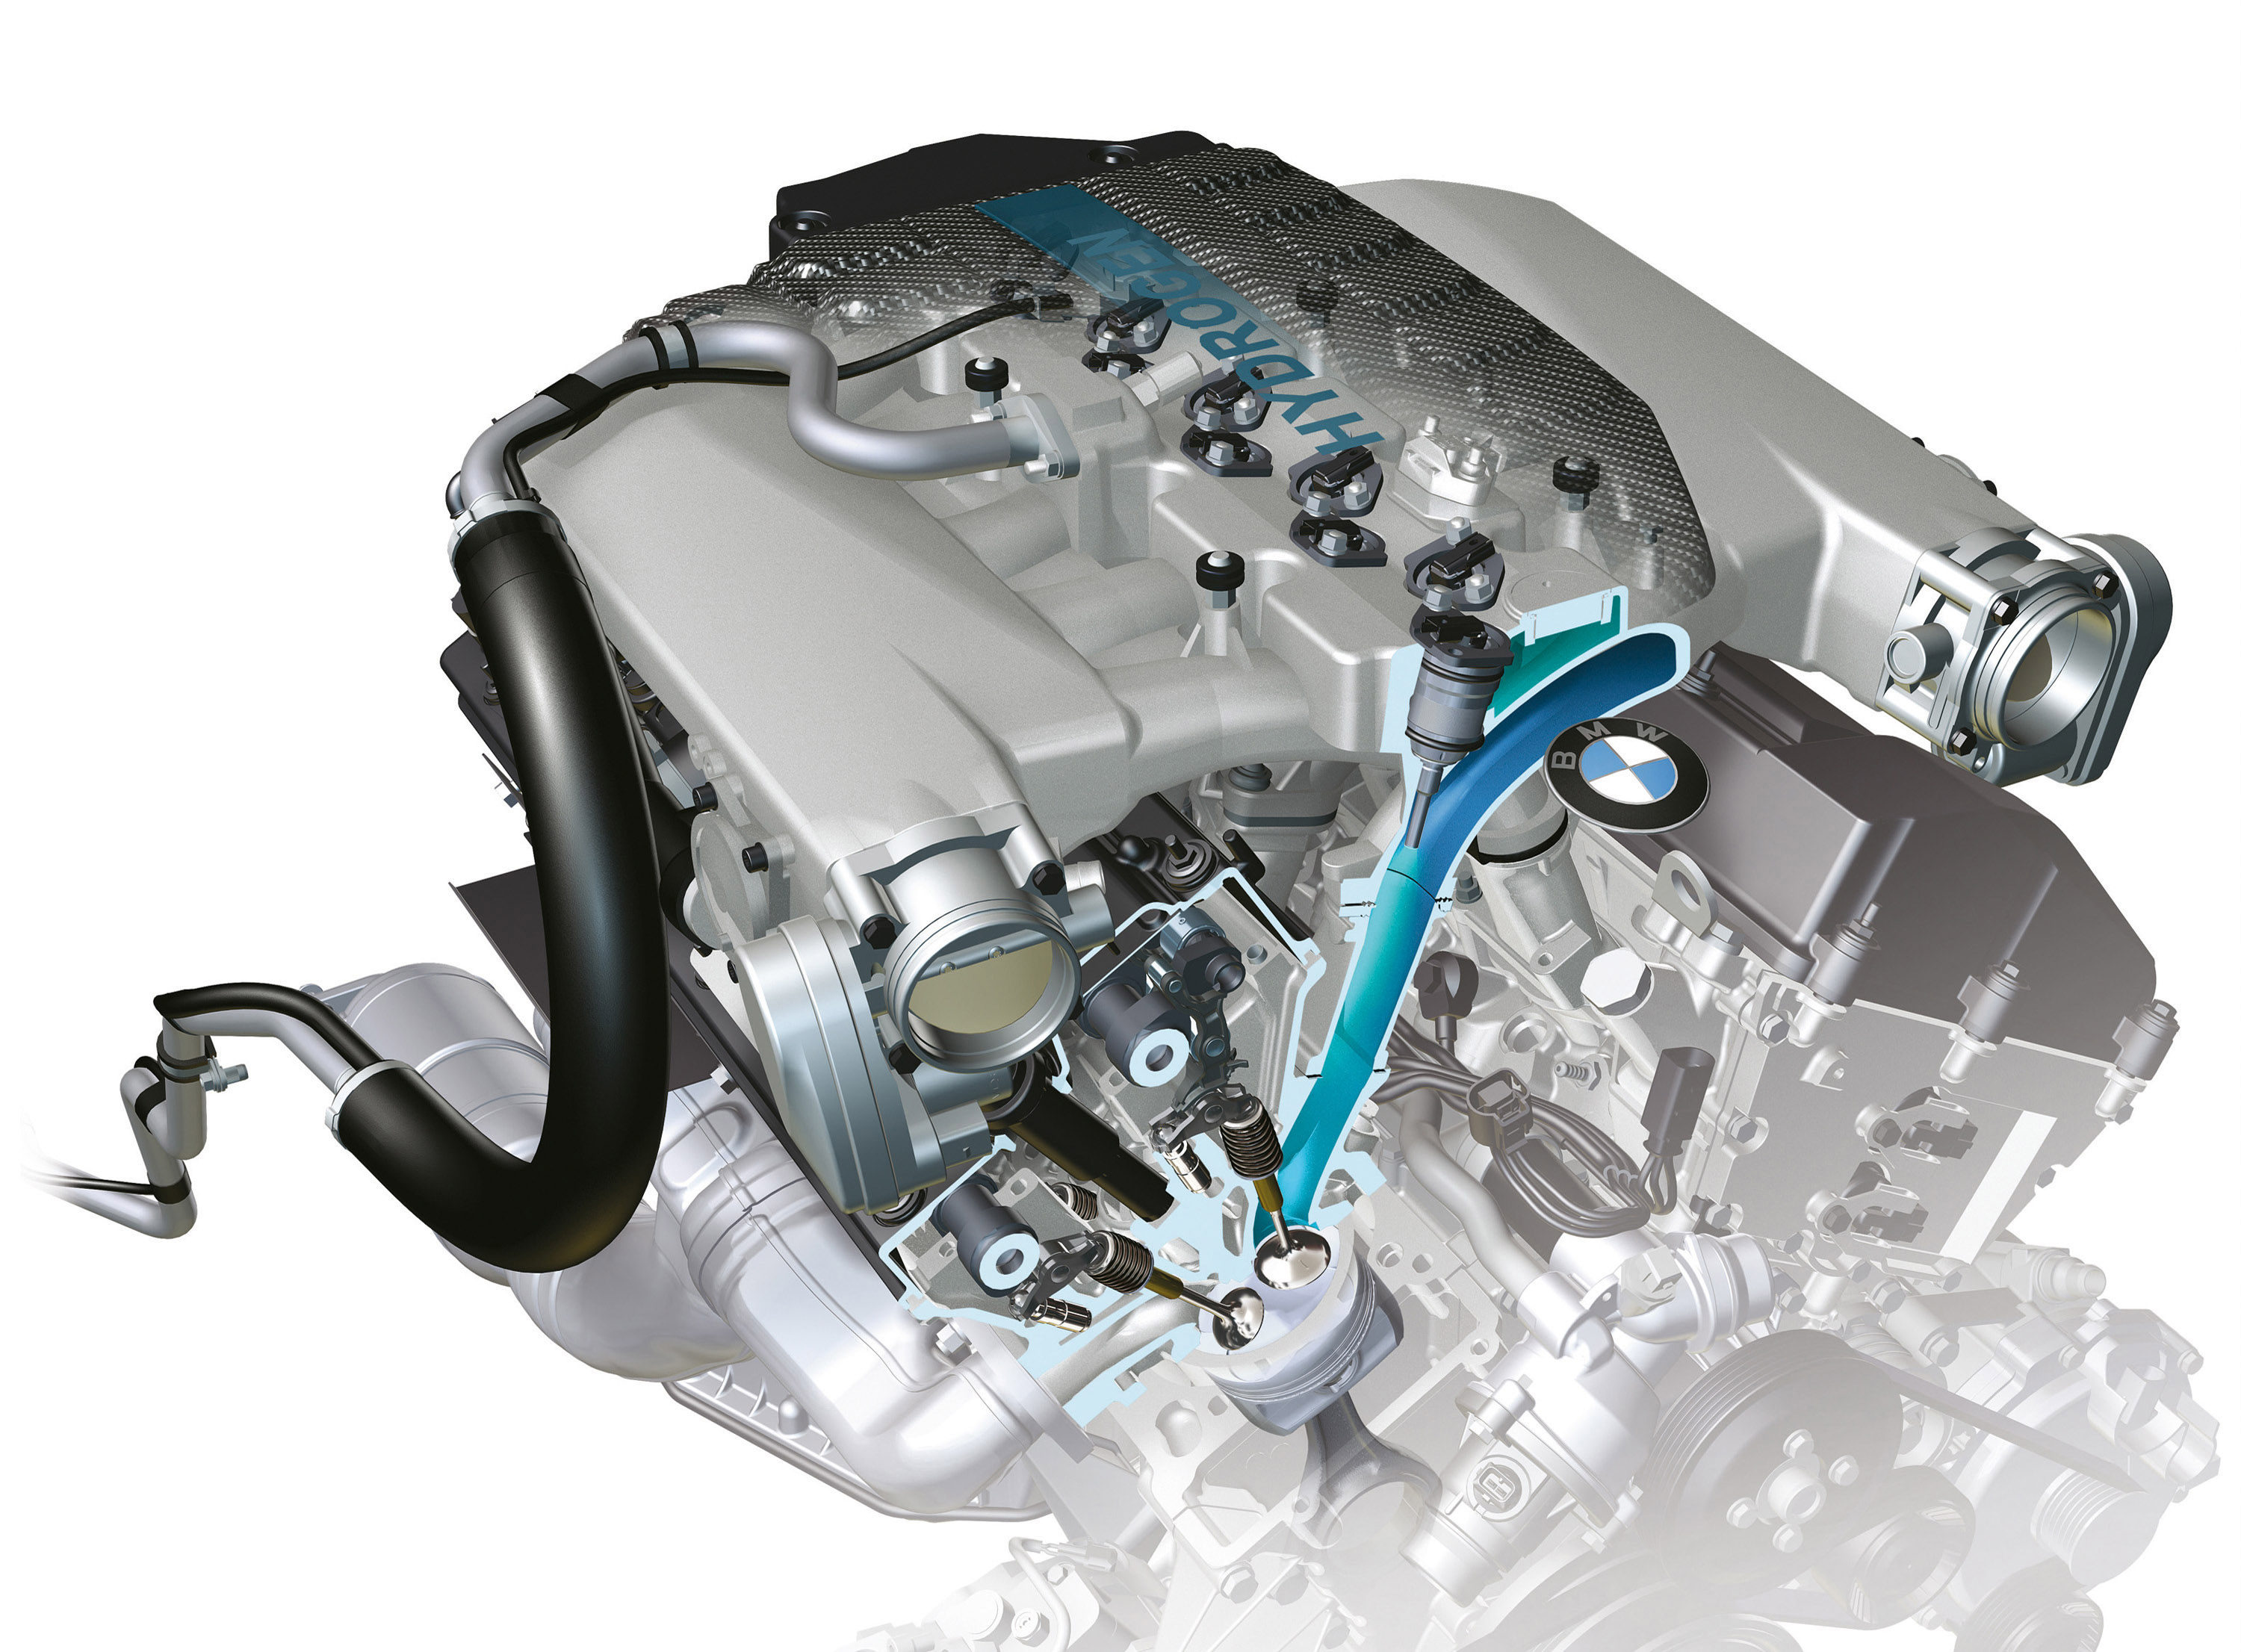 reducing gases emitted from car engines essay A hybrid will turn the gas engine off when the car is stopped at a light or stop sign   hybrid cars help reduce carbon emissions in the air.